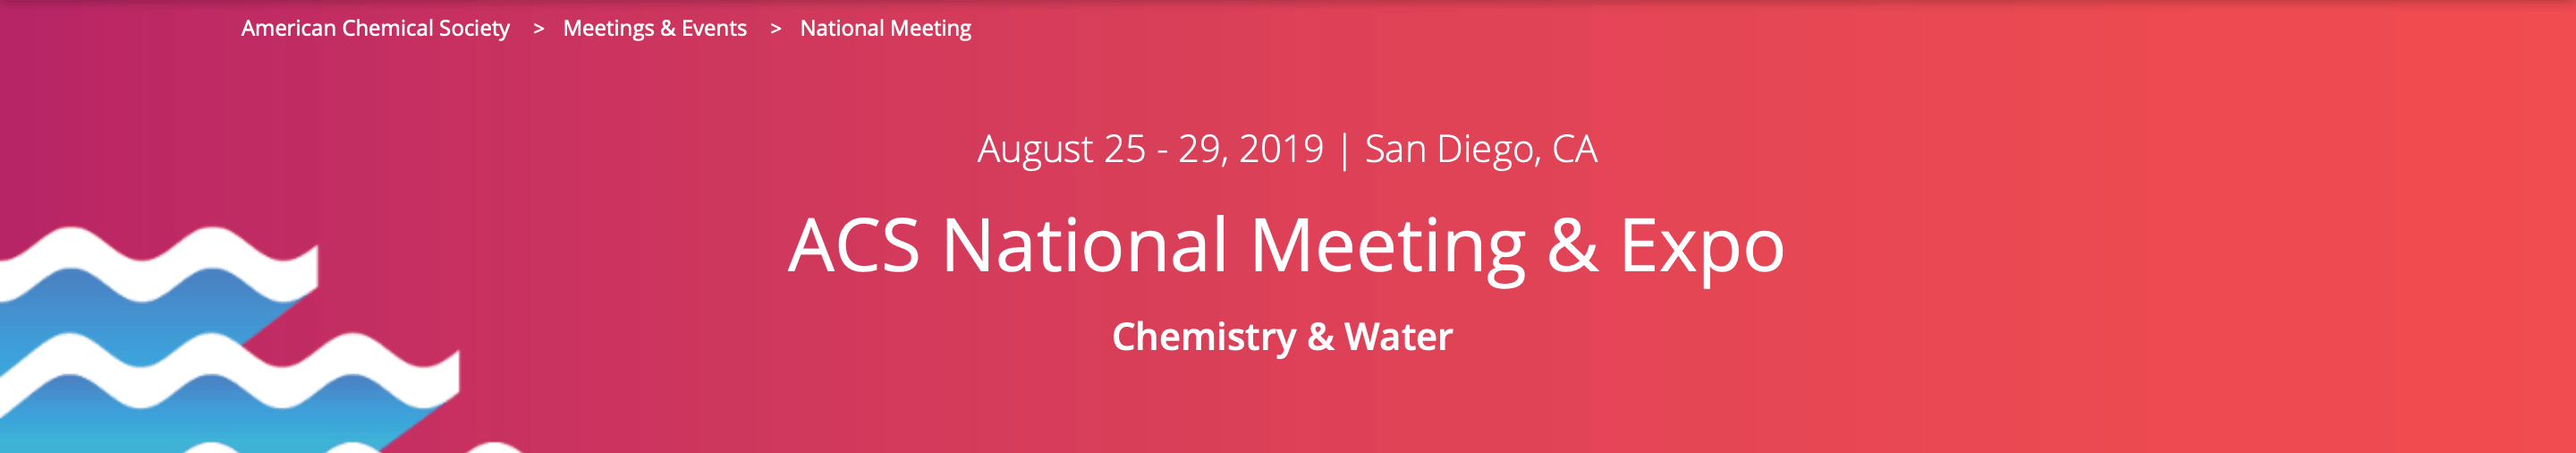 ACS National Meeting & Expo – August 25 – 29, 2019 | San Diego, CA